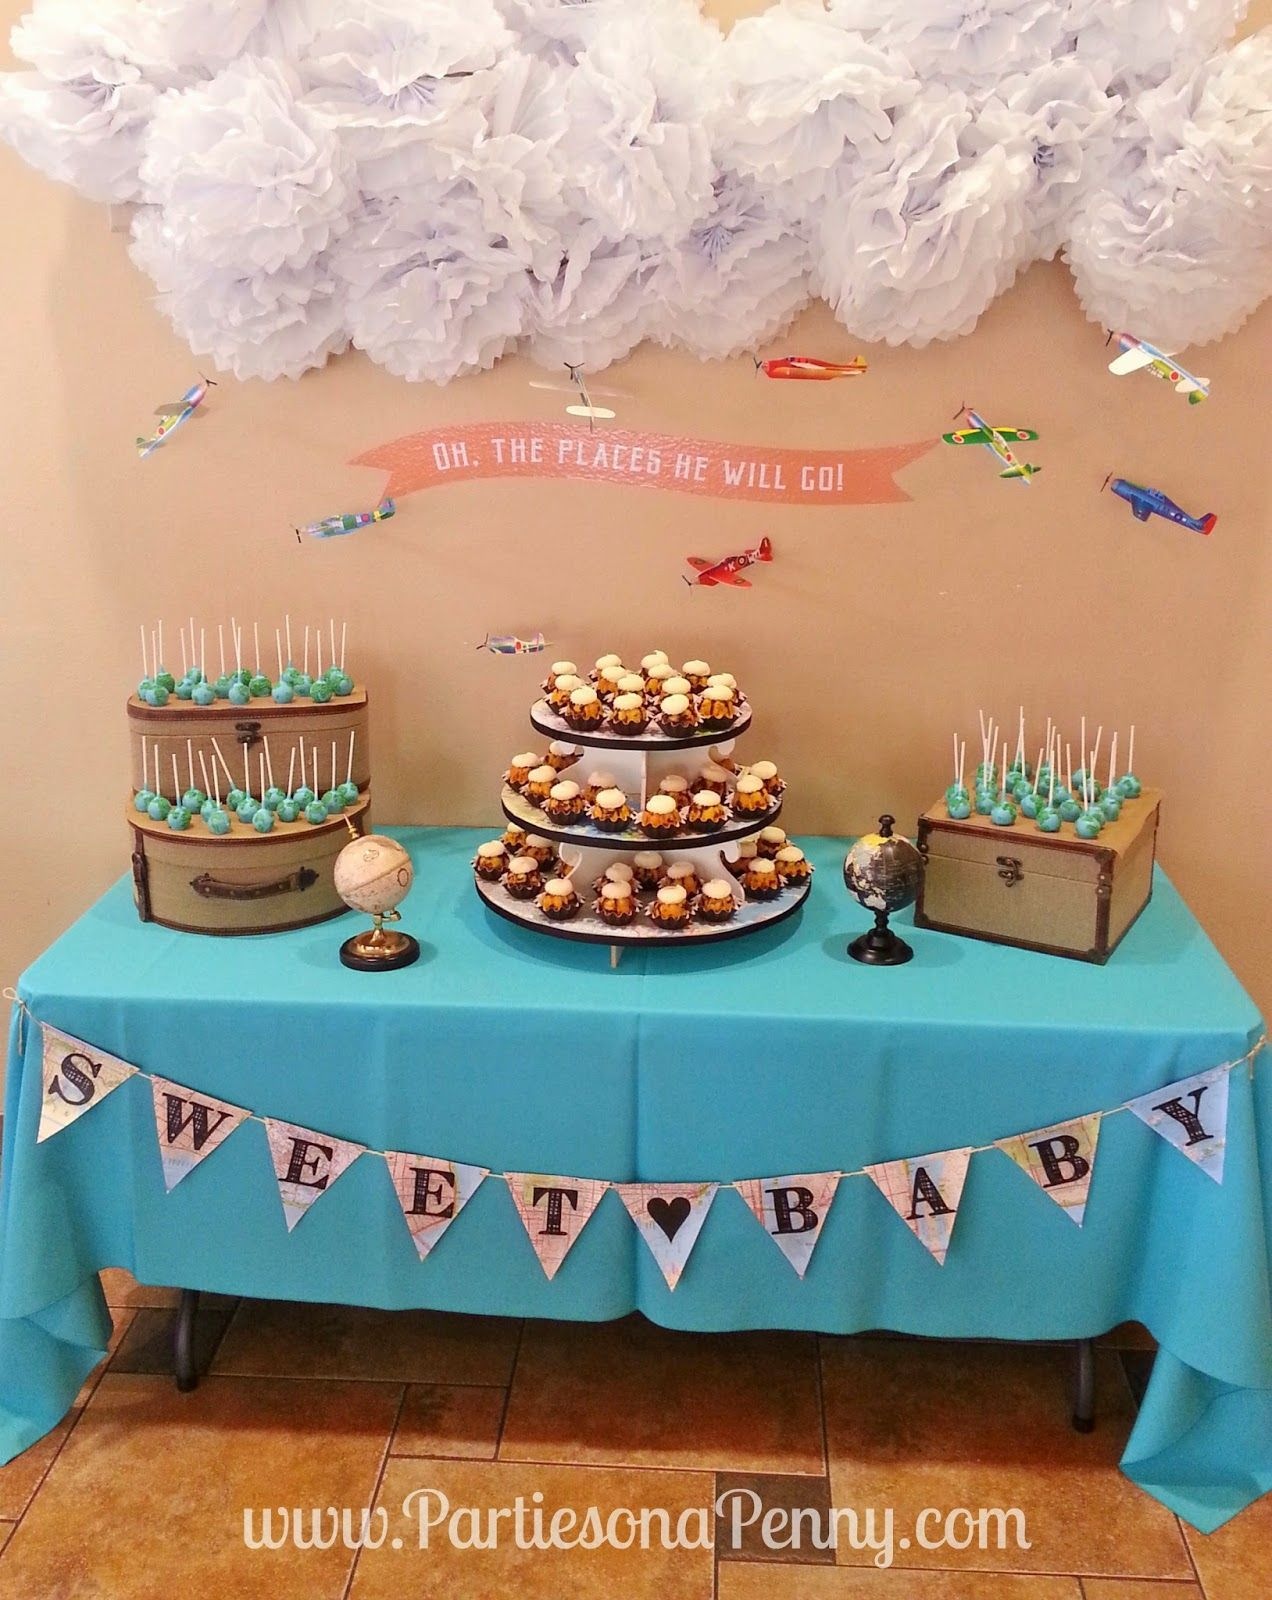 Parties A Penny Travel Themed Baby Shower